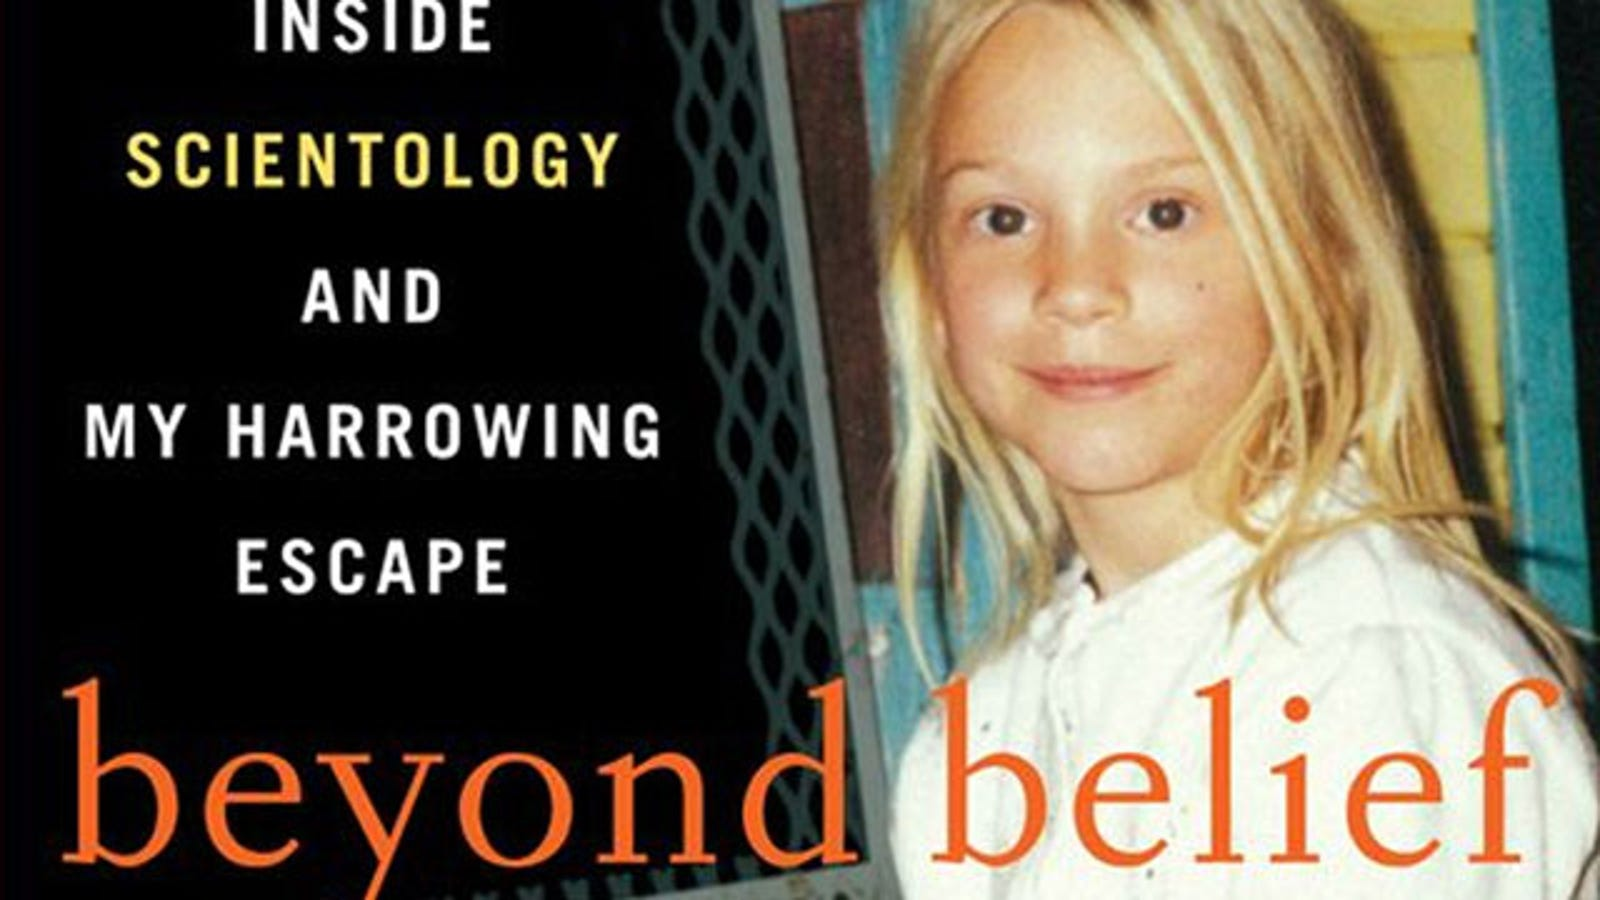 a scientologist s horrifying memories of child abuse and exploitation